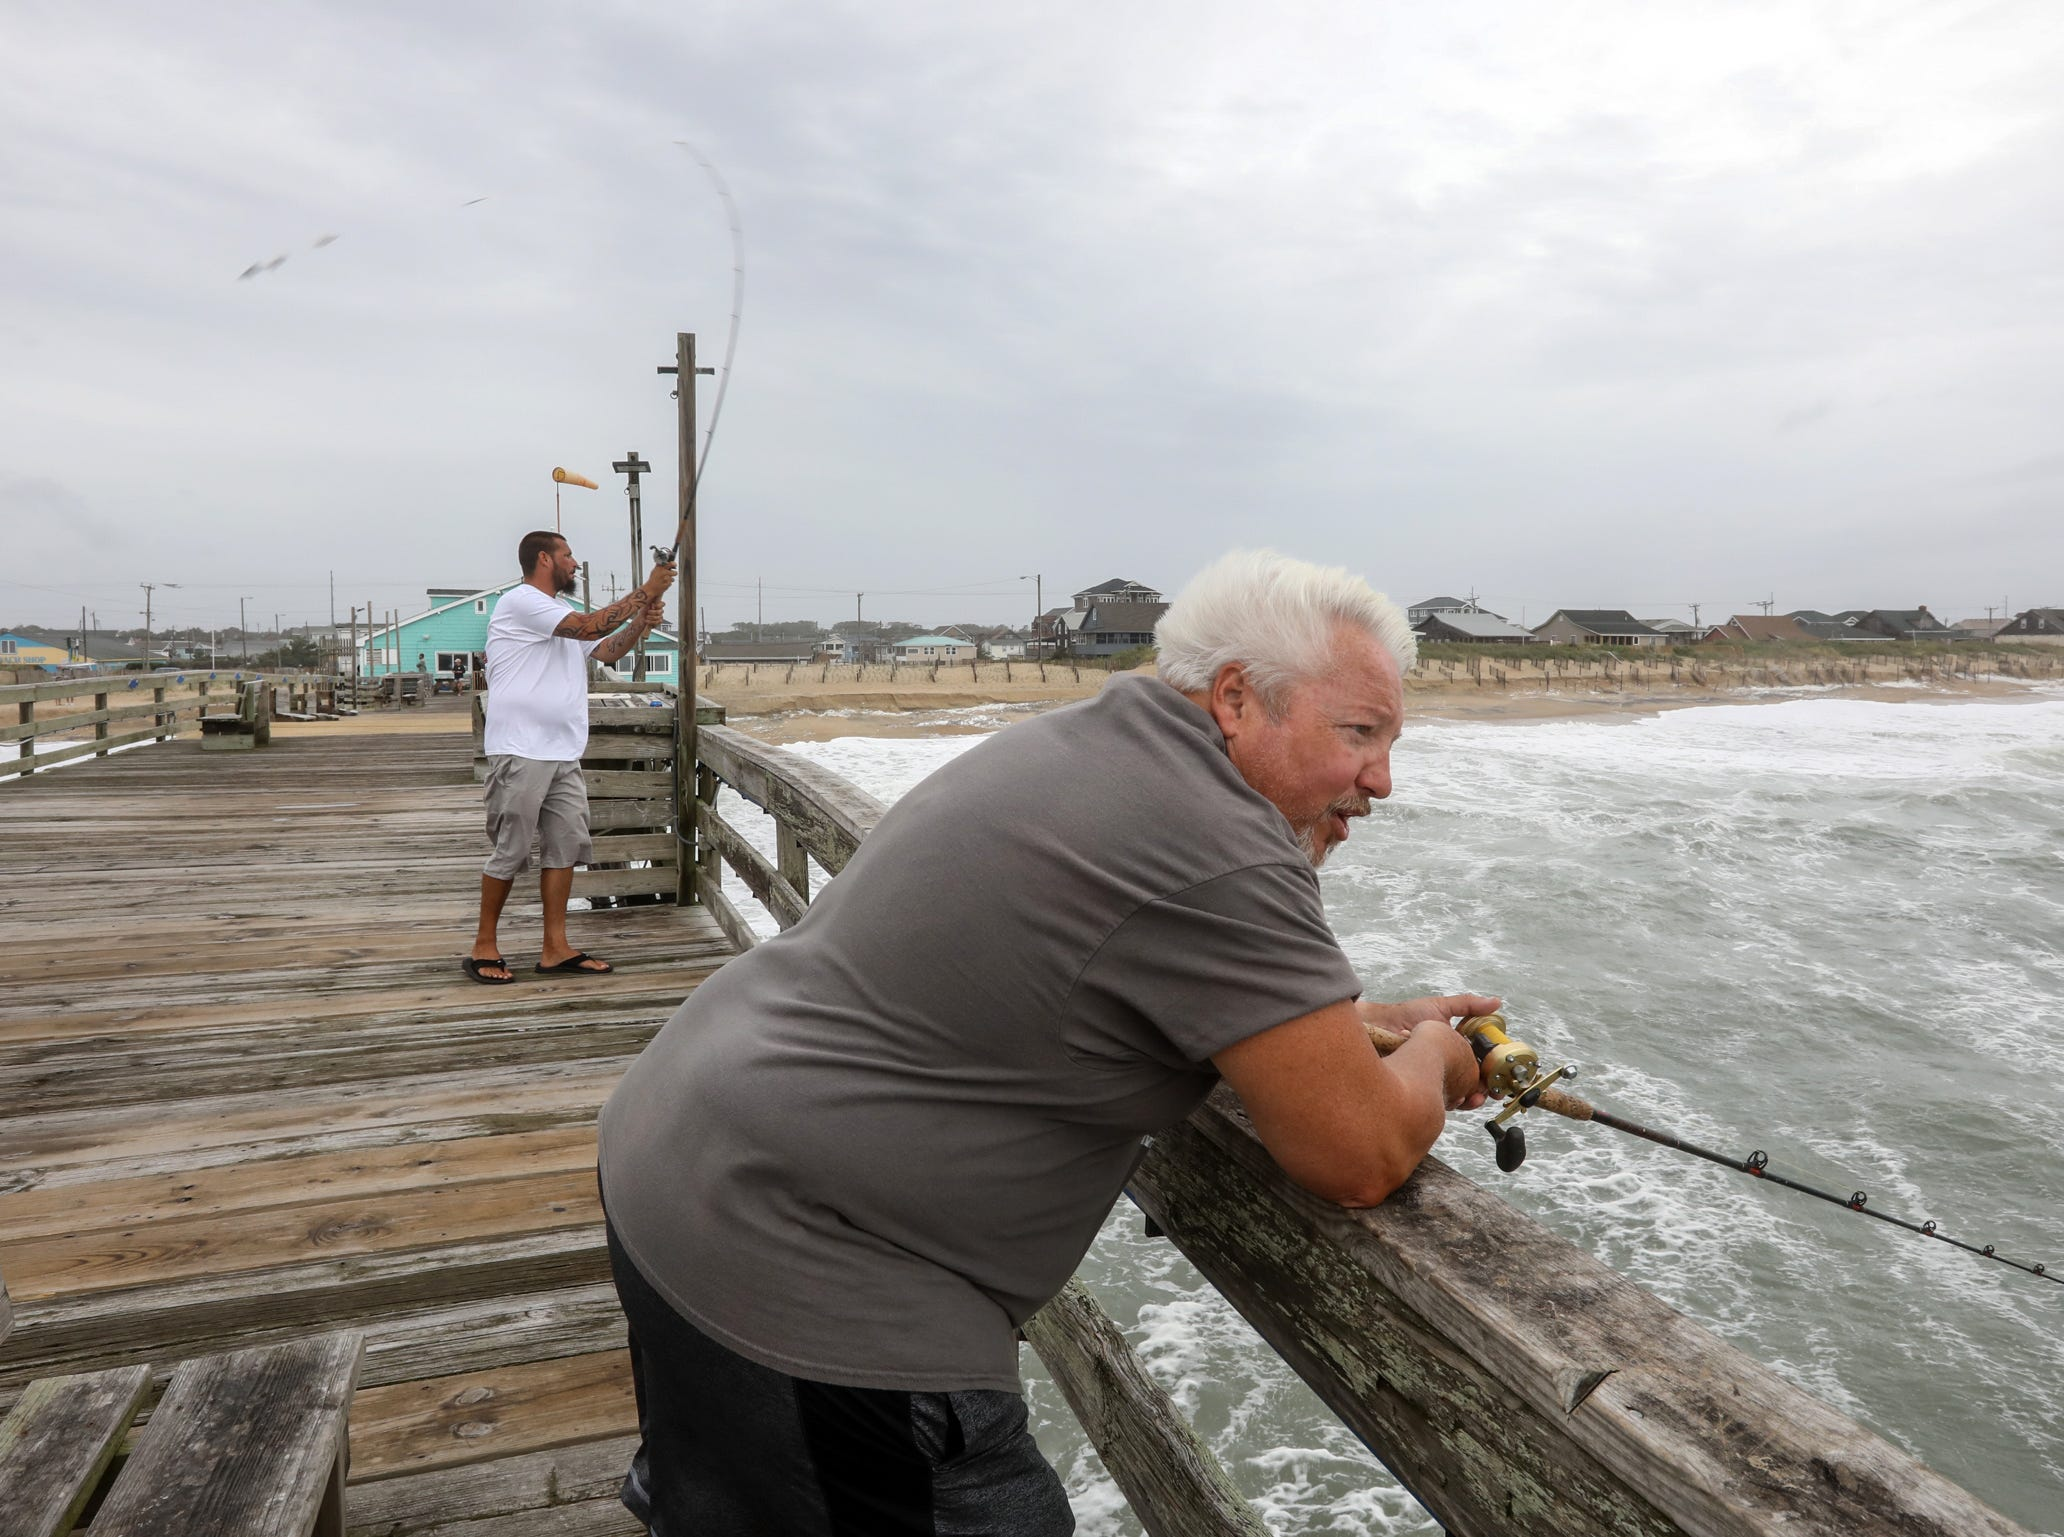 September 14, 2018; Kill Devil Hills, NC, USA; Troy Byrum, front, fishes off the Avalon Fishing Pier in Kill Devil Hills, North Carolina on Friday, September 14, 2018.